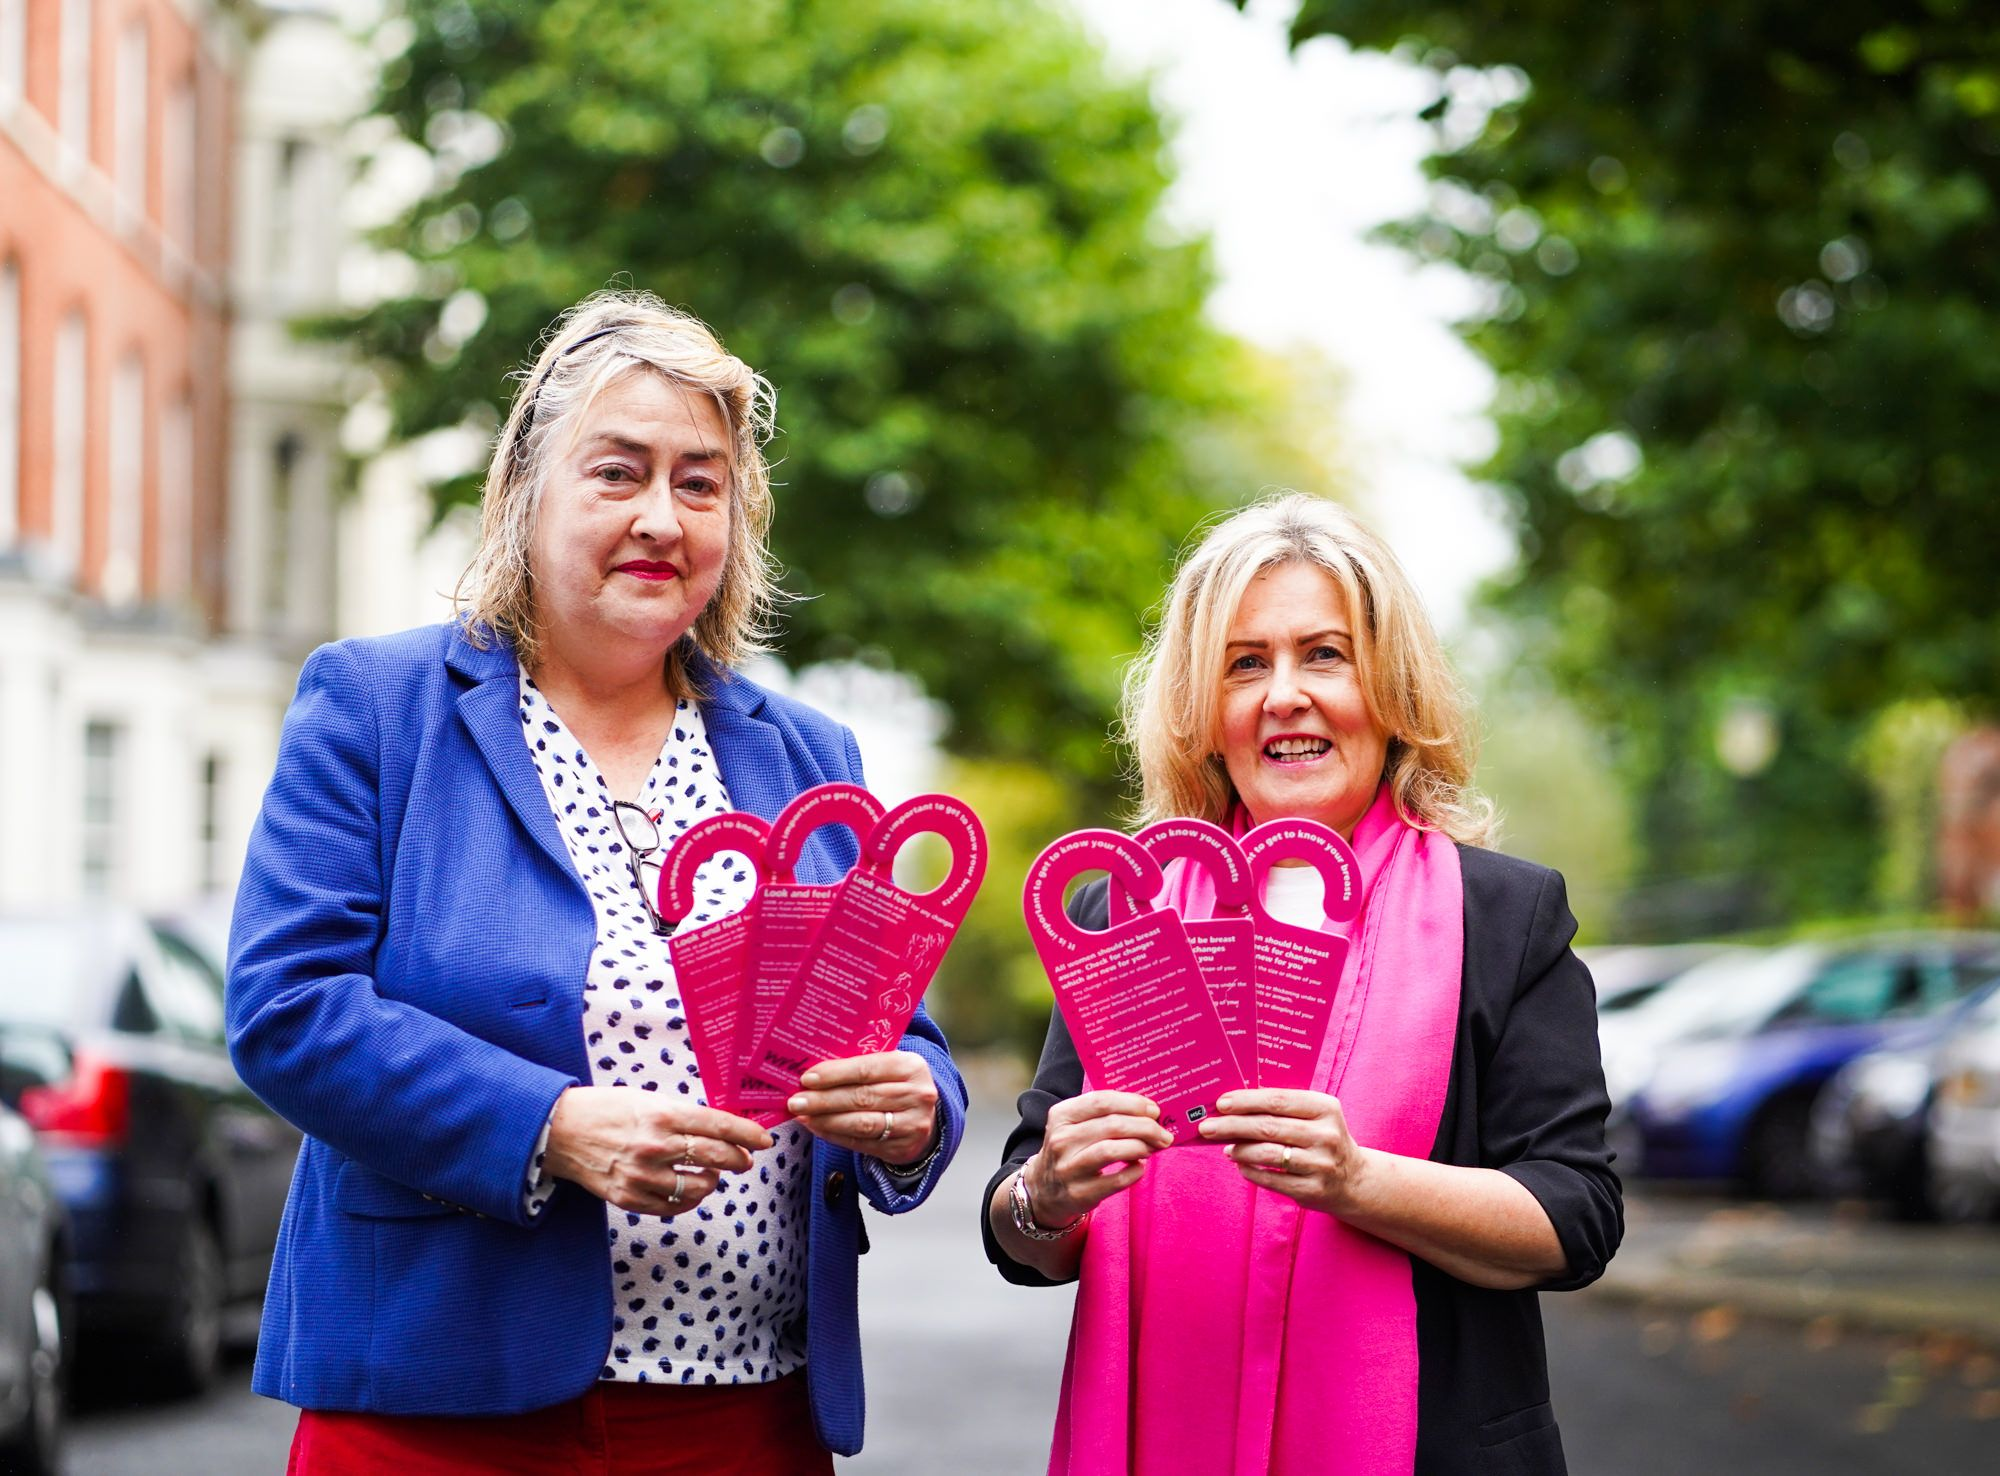 GET CHECKED: Katherine Robertson and Paula Murray from WRDA with waterproof cards that hang in the shower to give instructions on the best procedure for breast self-examination